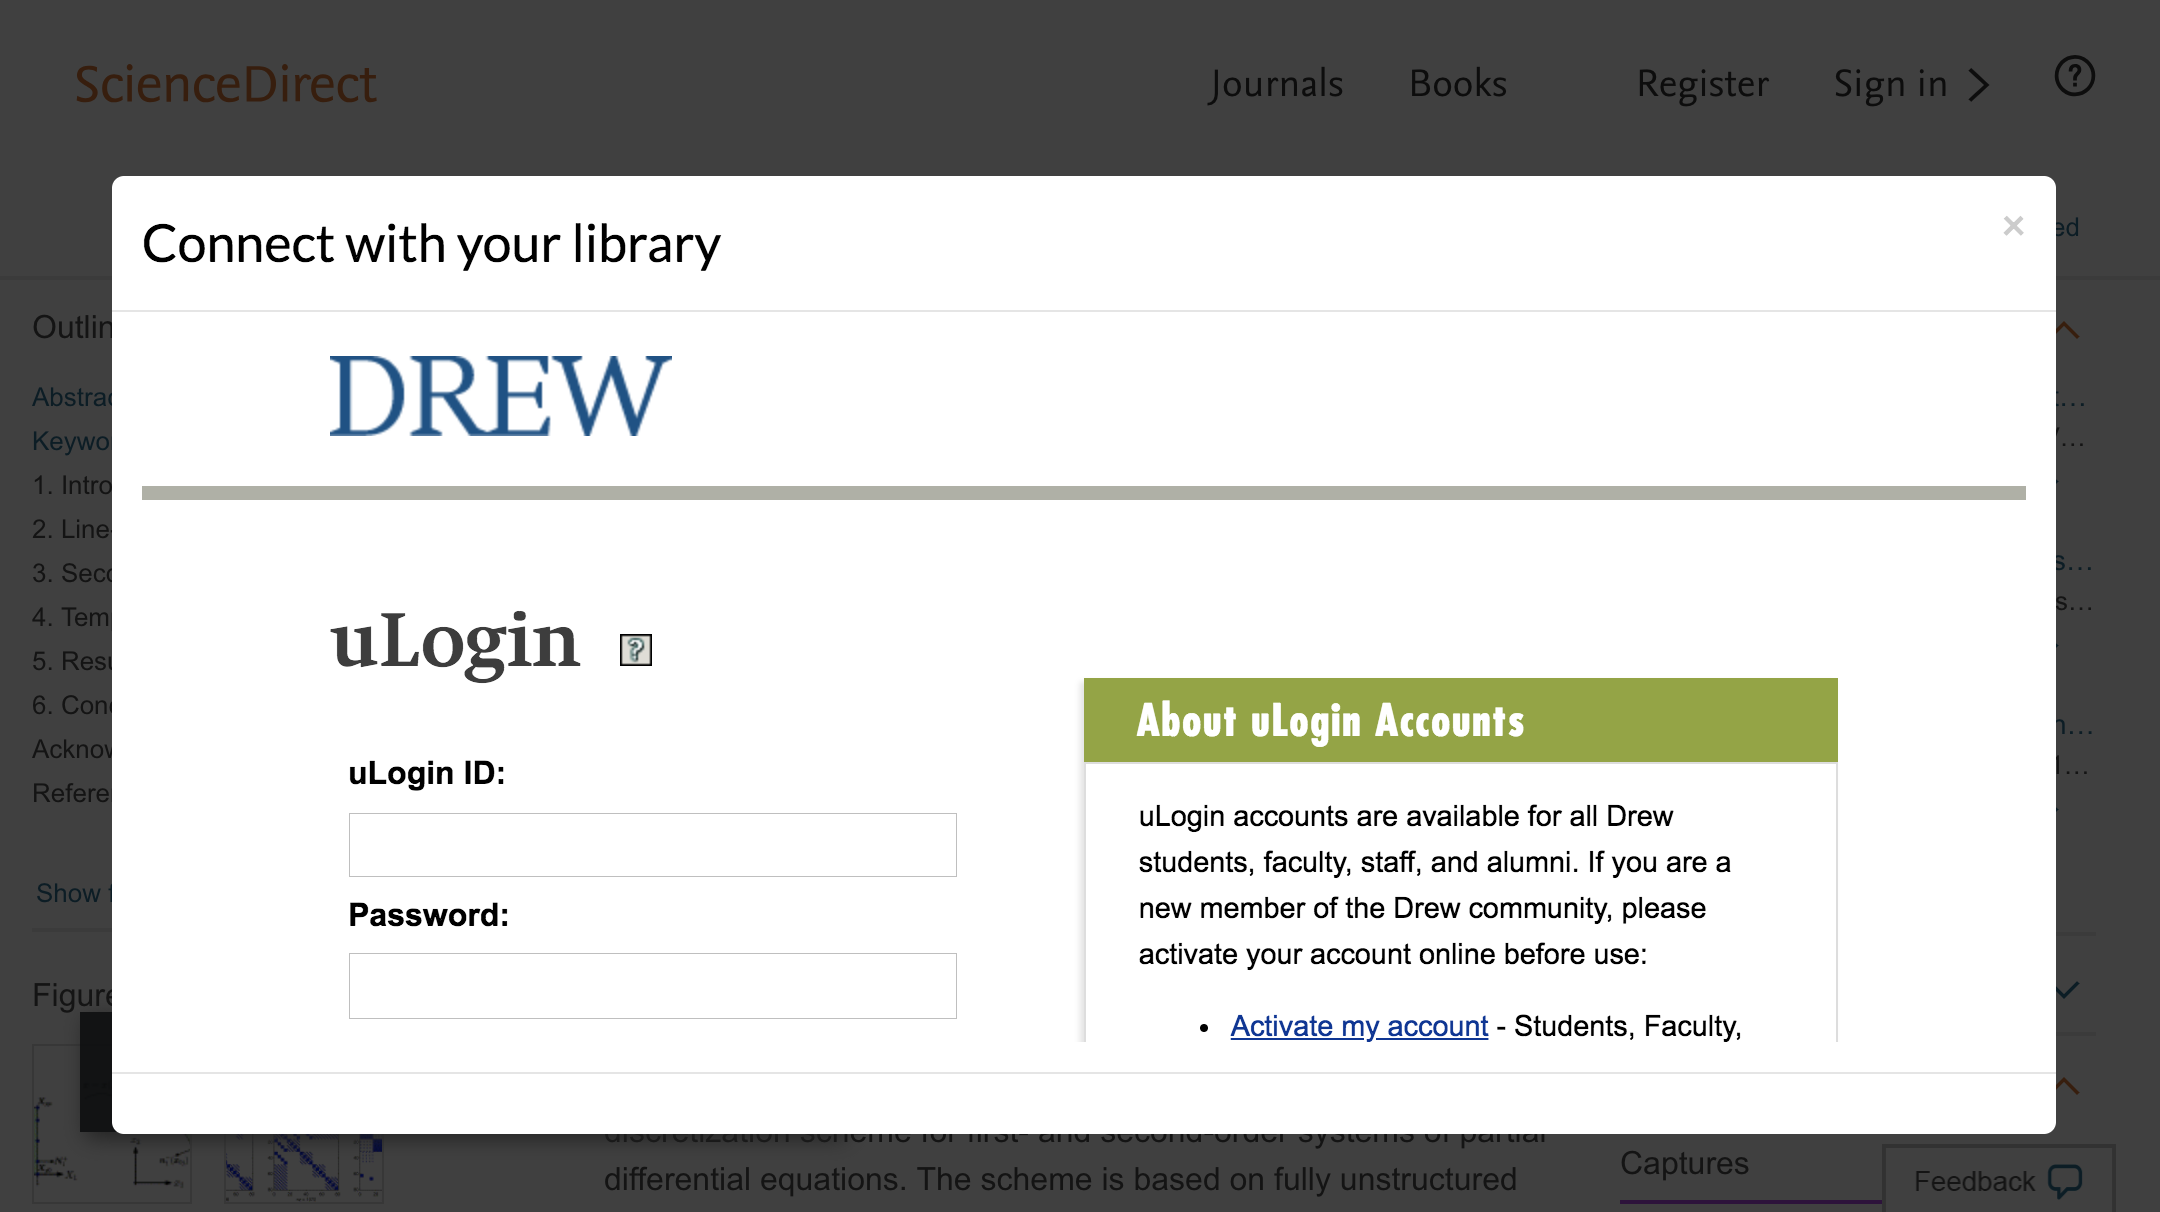 Enter Drew University credentials to access journal subscriptions.